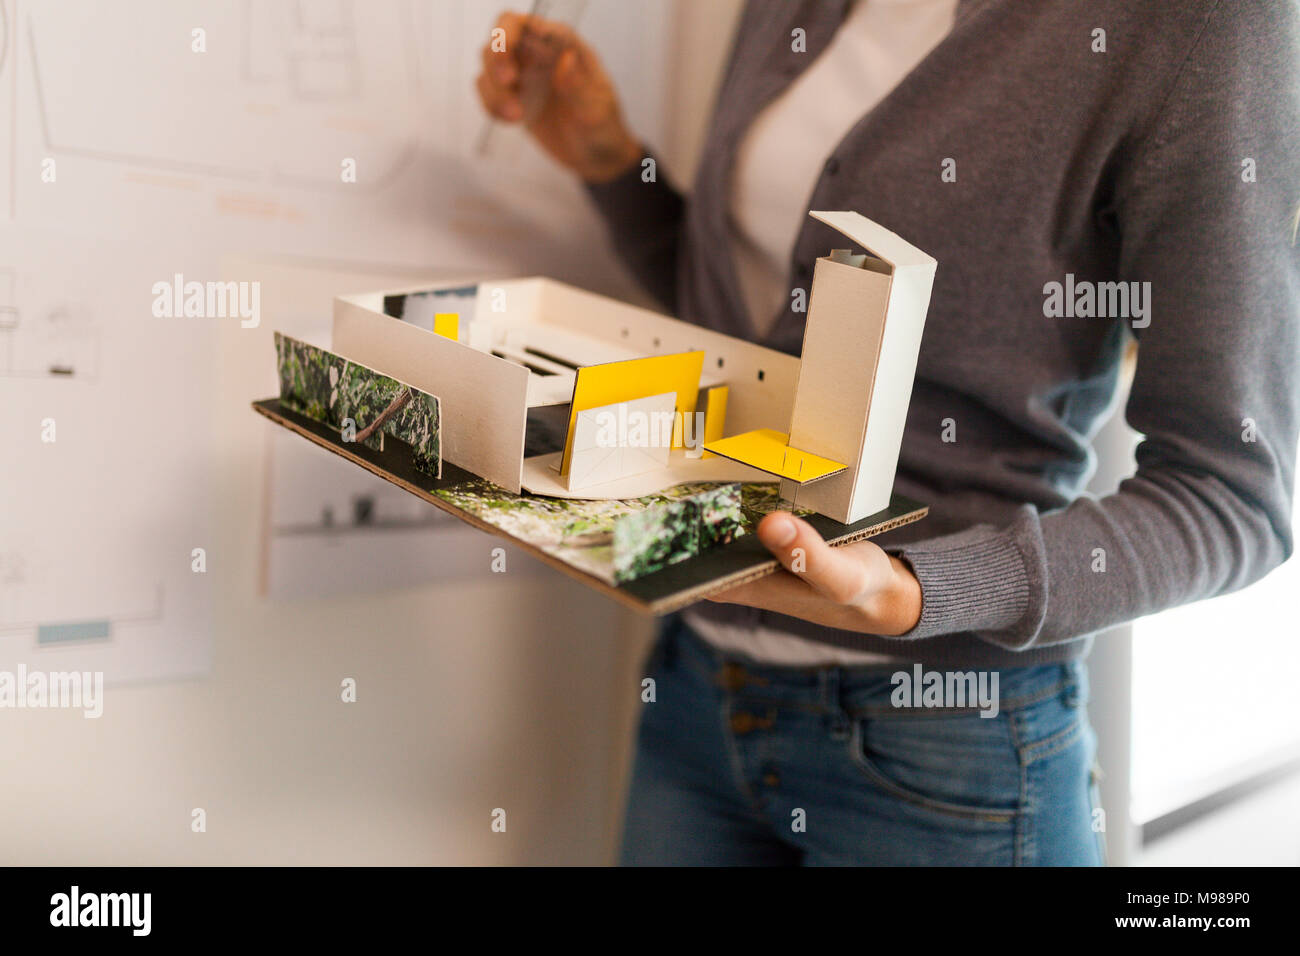 Libre de travailler sur un projet, holding architectural model Photo Stock